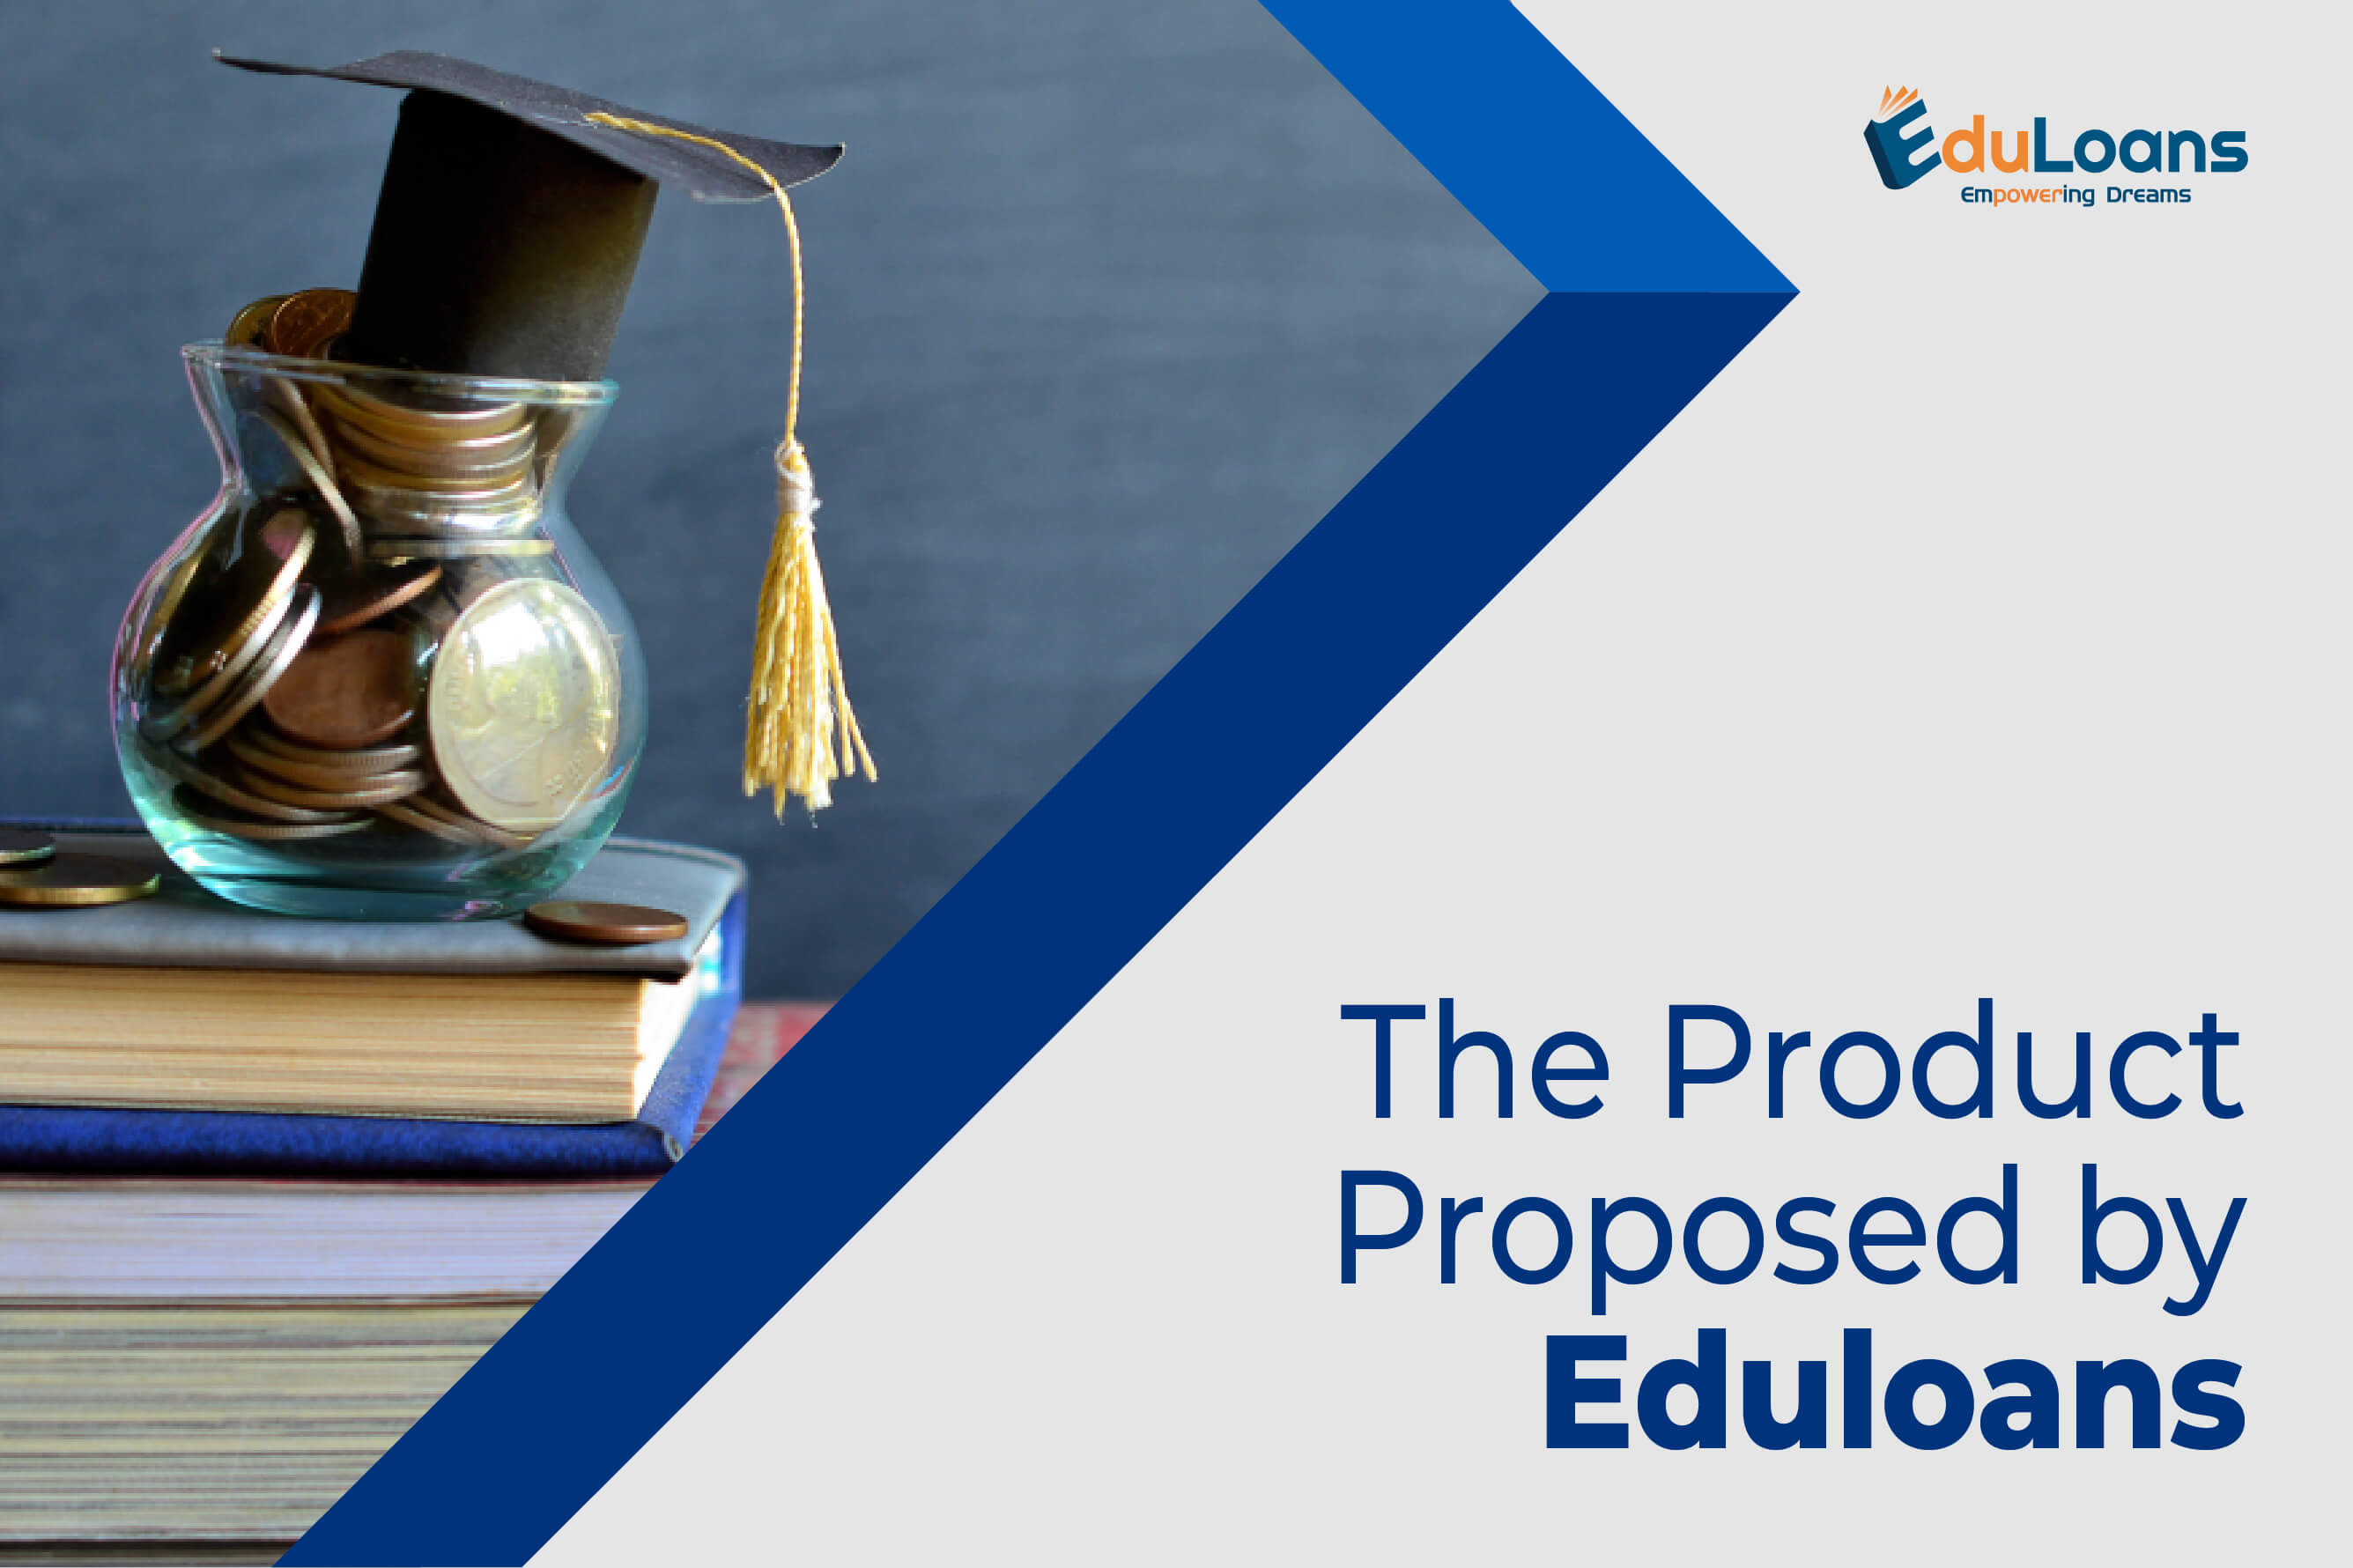 The Product Proposed by Eduloans